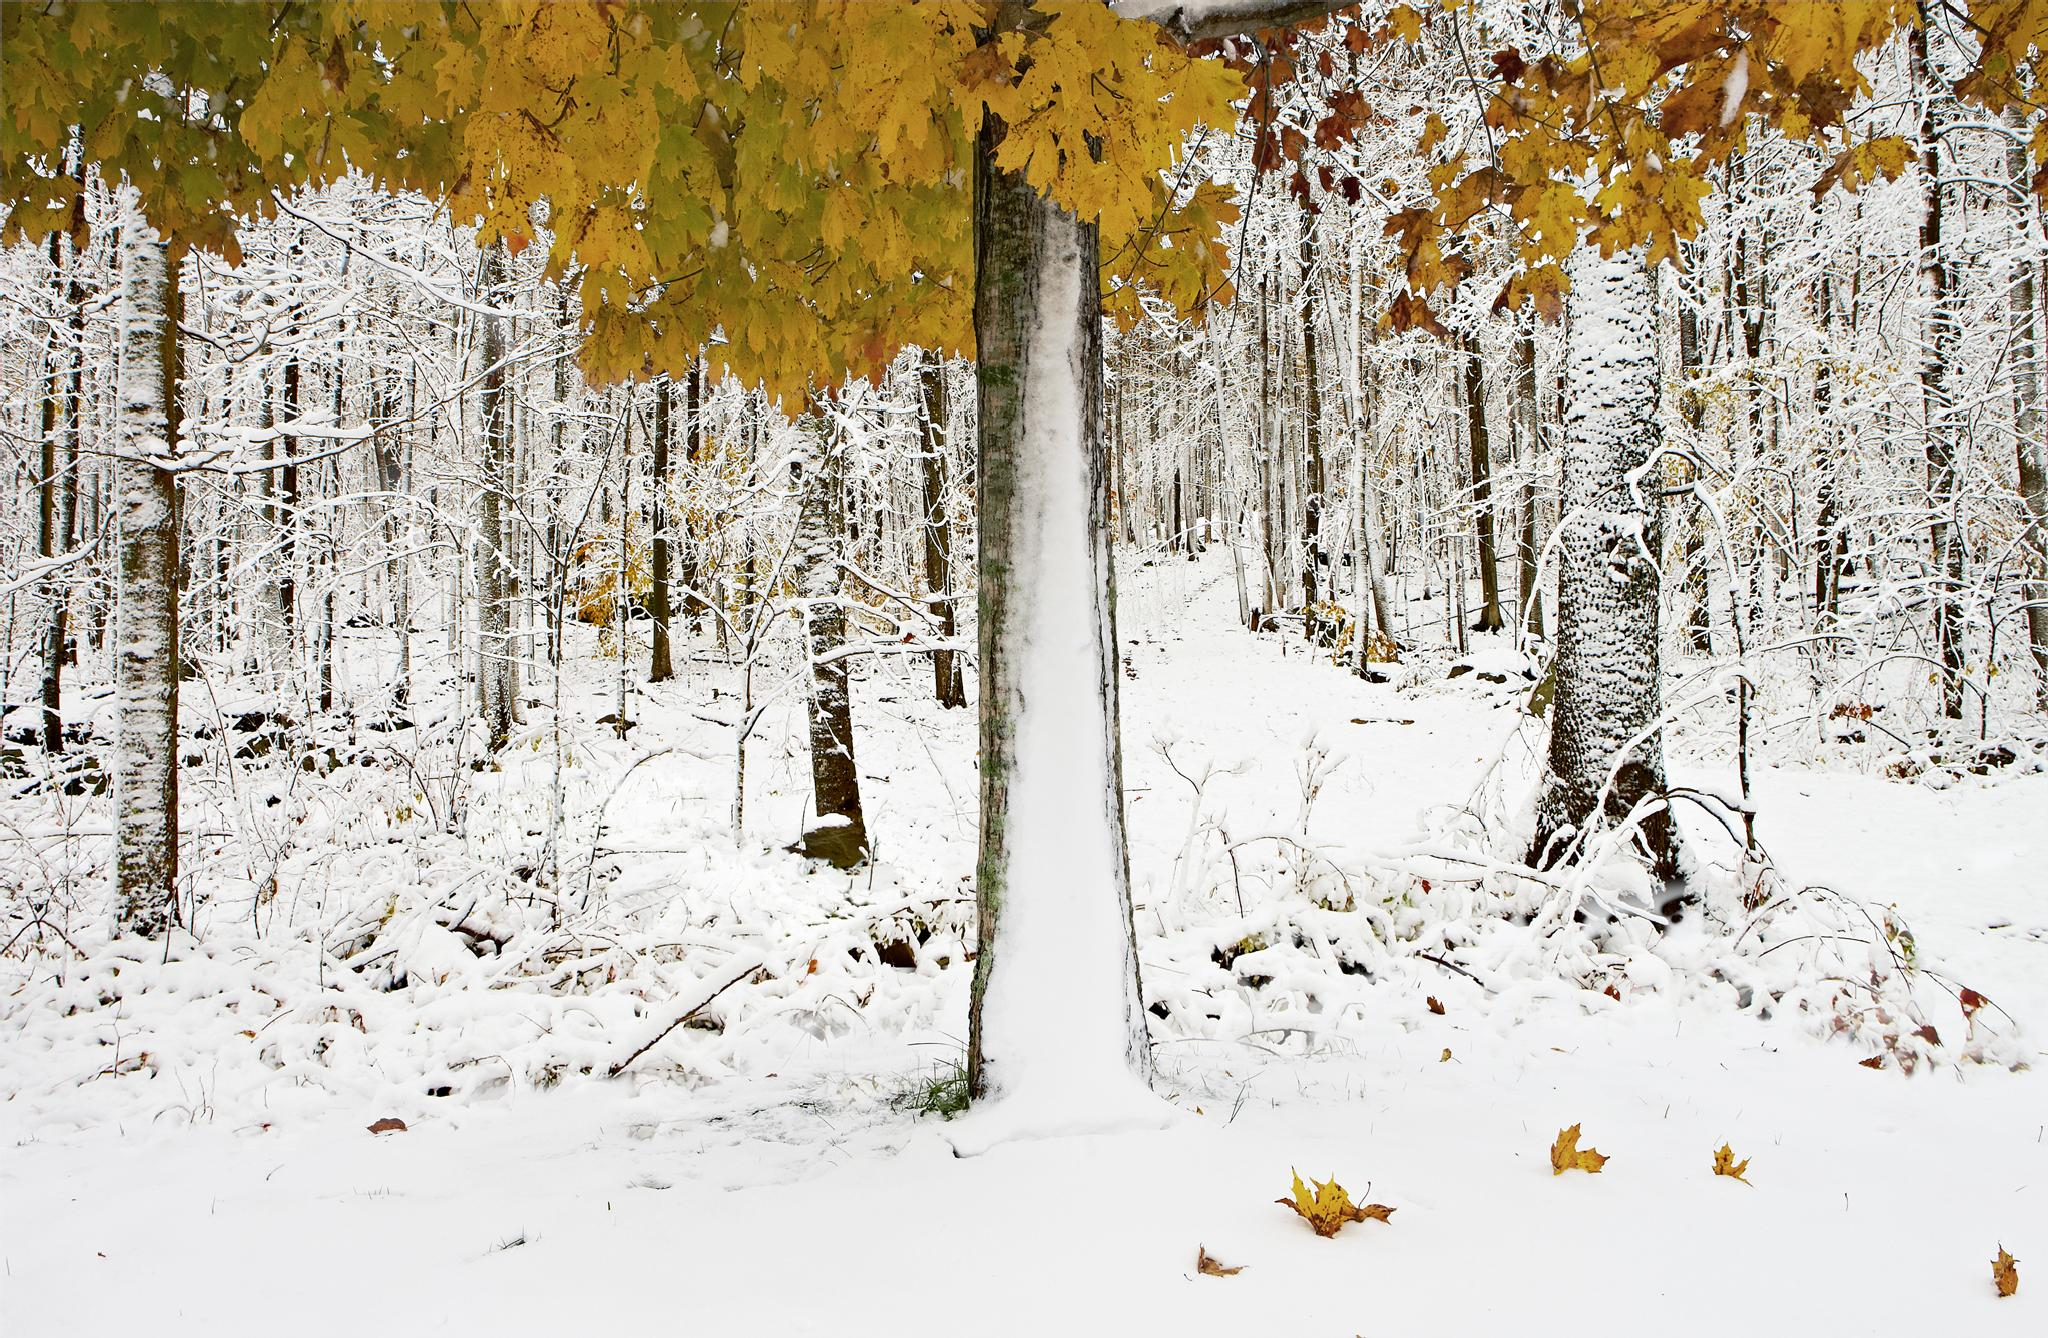 Early snow in the Berkshires by ChrisRyan